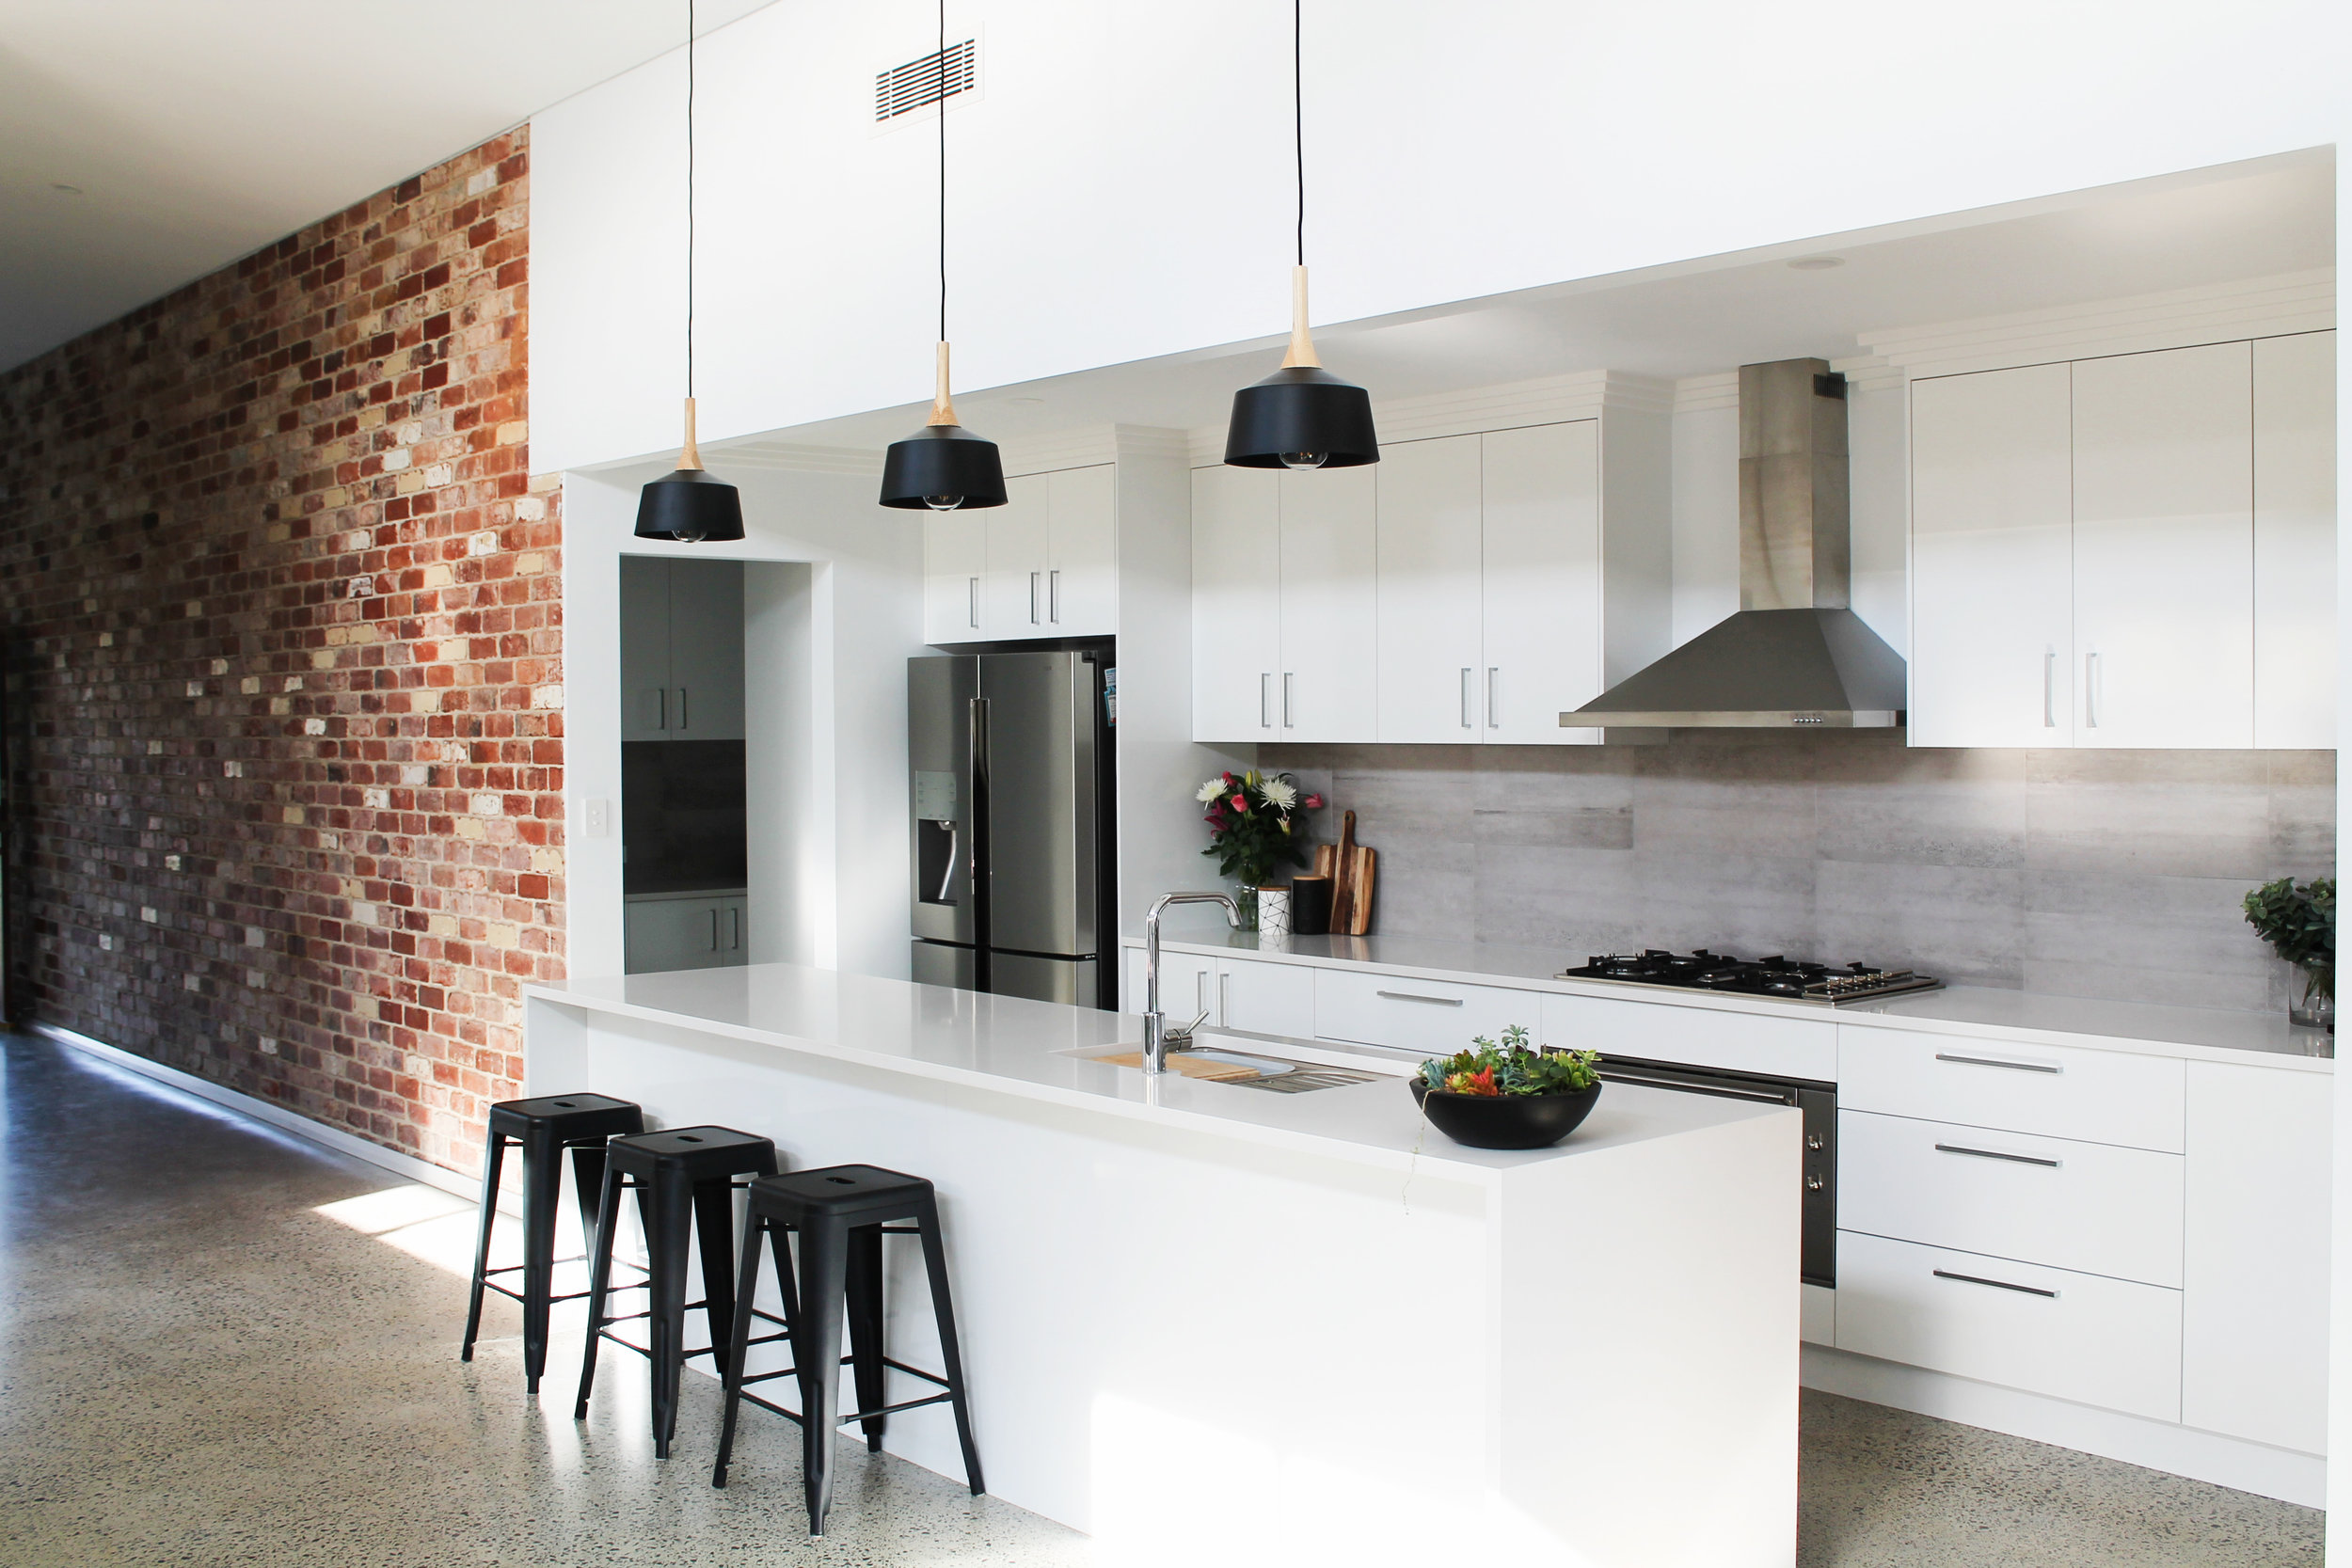 Industrial styled kitchen - Recycled Red Brick